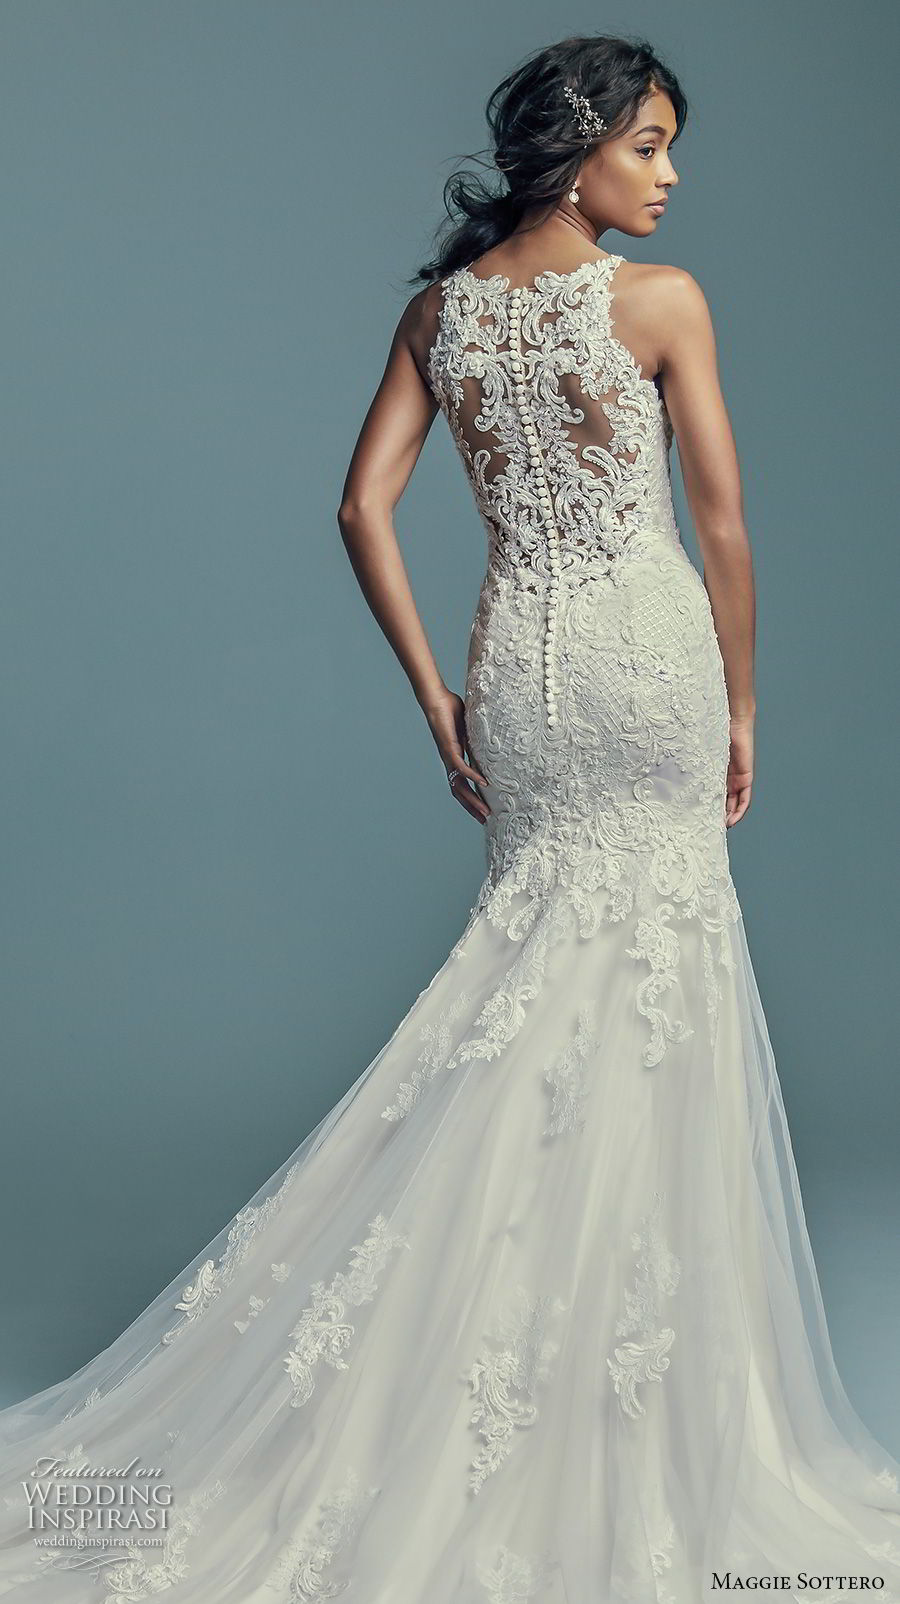 maggie sottero fall 2018 bridal sleeveless illusion halter sweetheart neckline full embellishment elegant fit and flare wedding dress sheer lace back chapel train (14) bv